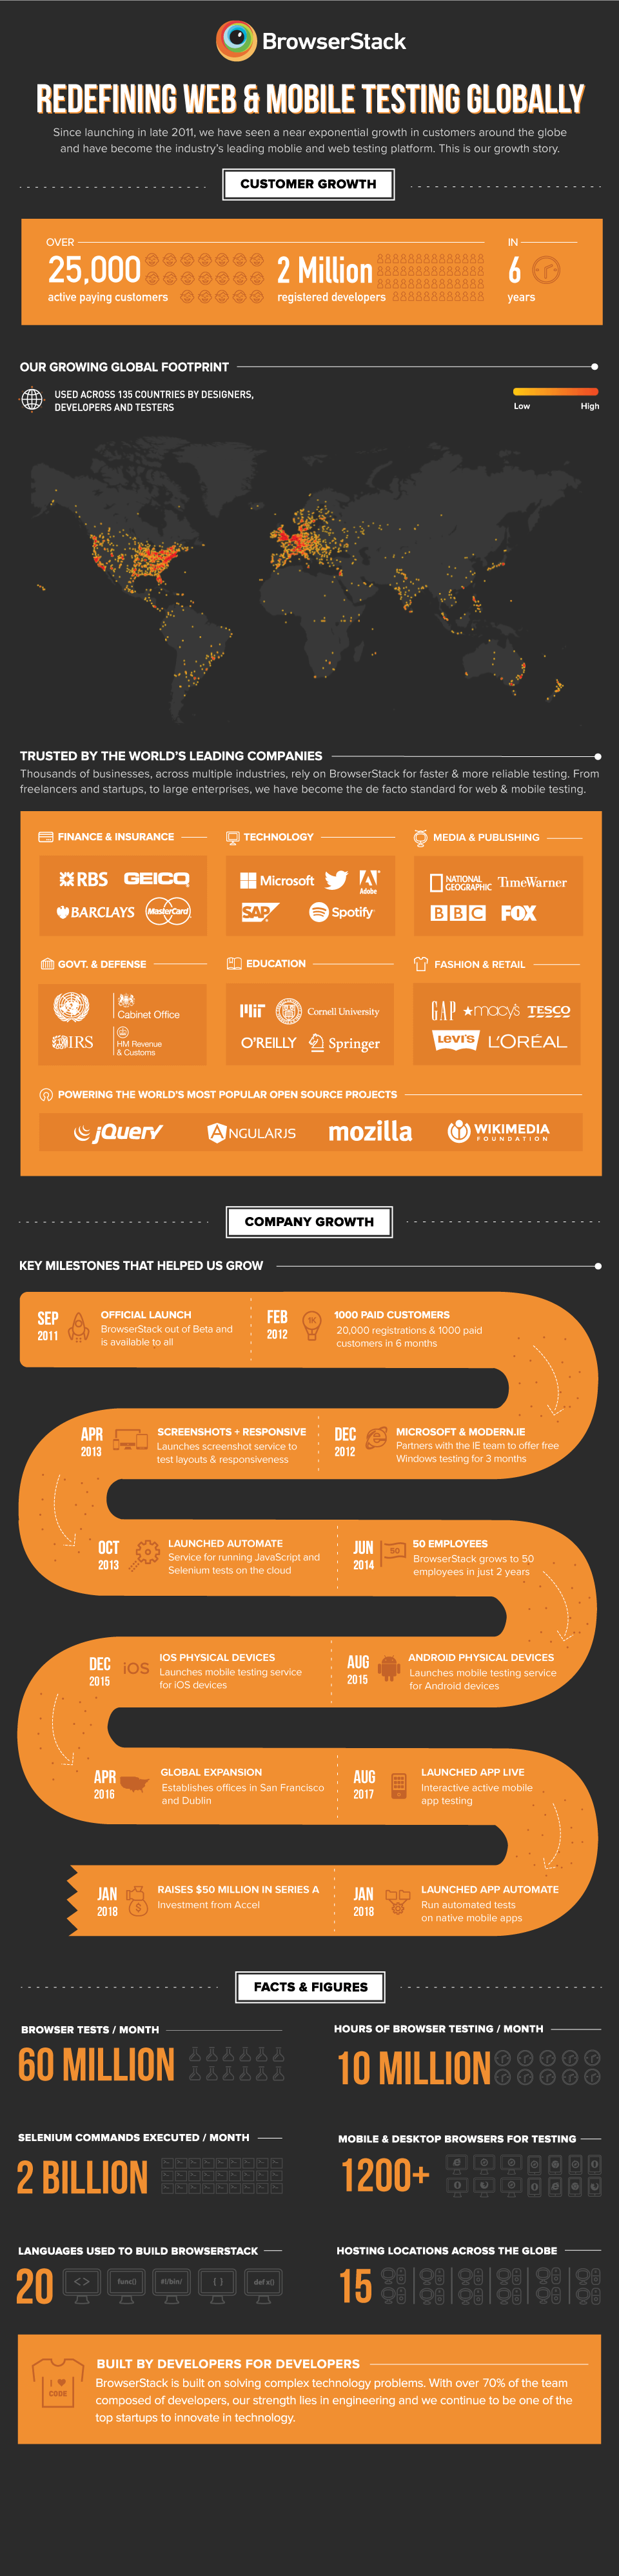 BrowserStack's Growth